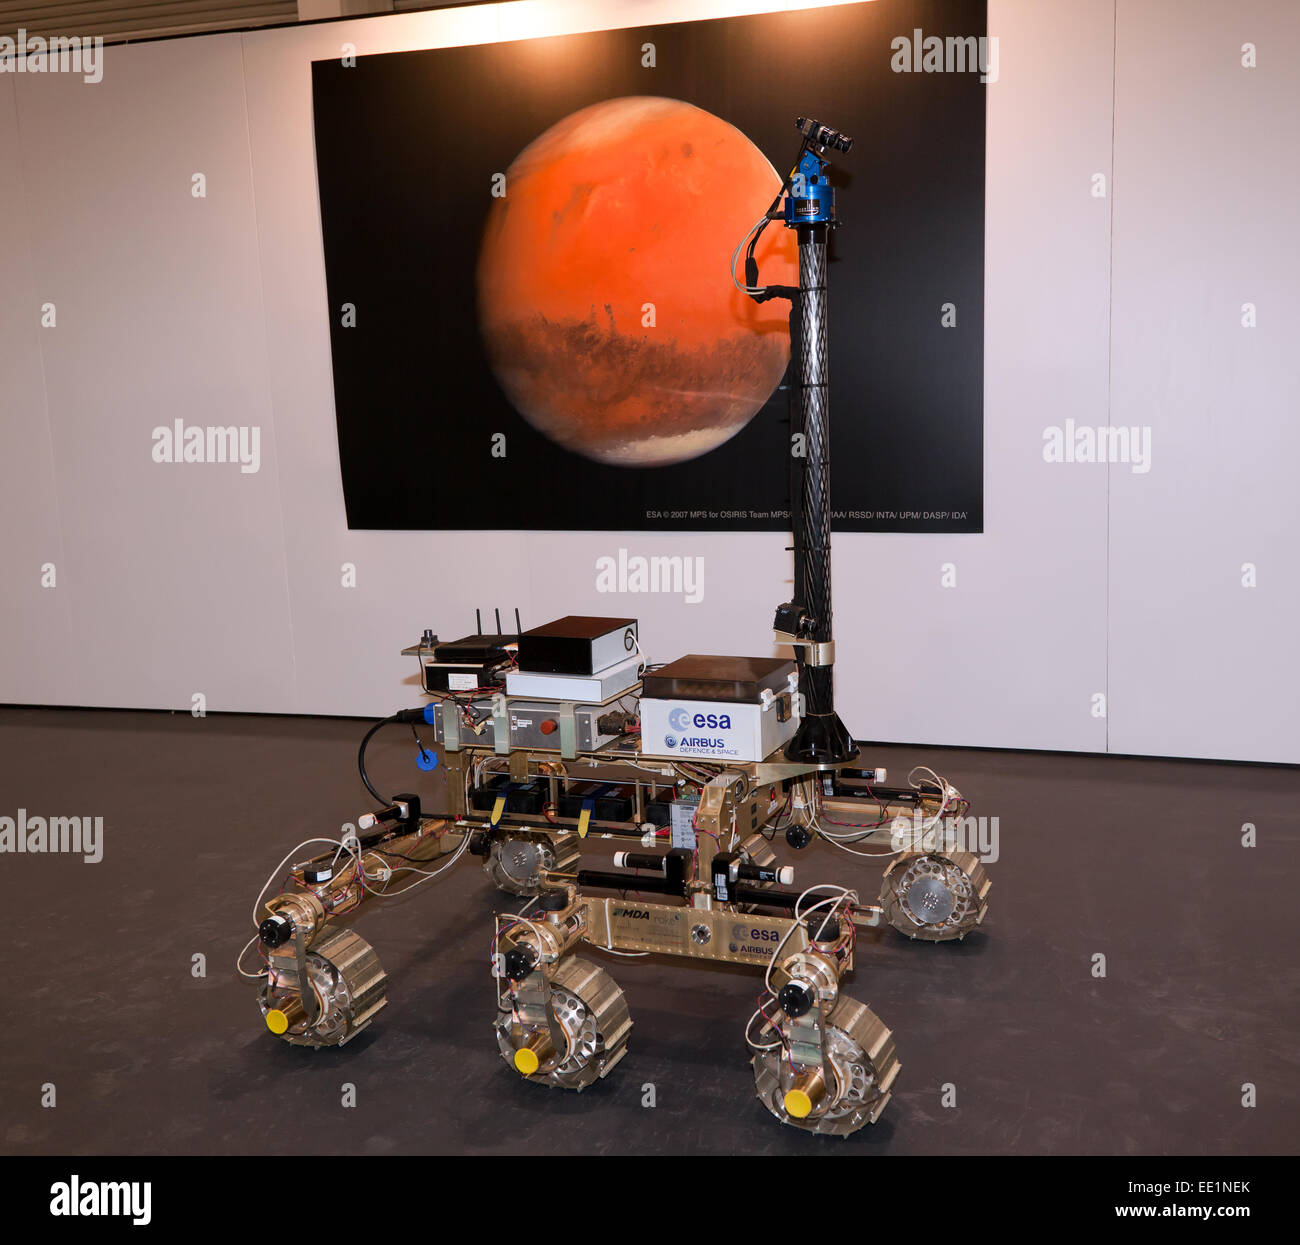 Bruno Mars Rover, on display in James May's 'Cars that Changed the World' special exhibition,  at the - Stock Image